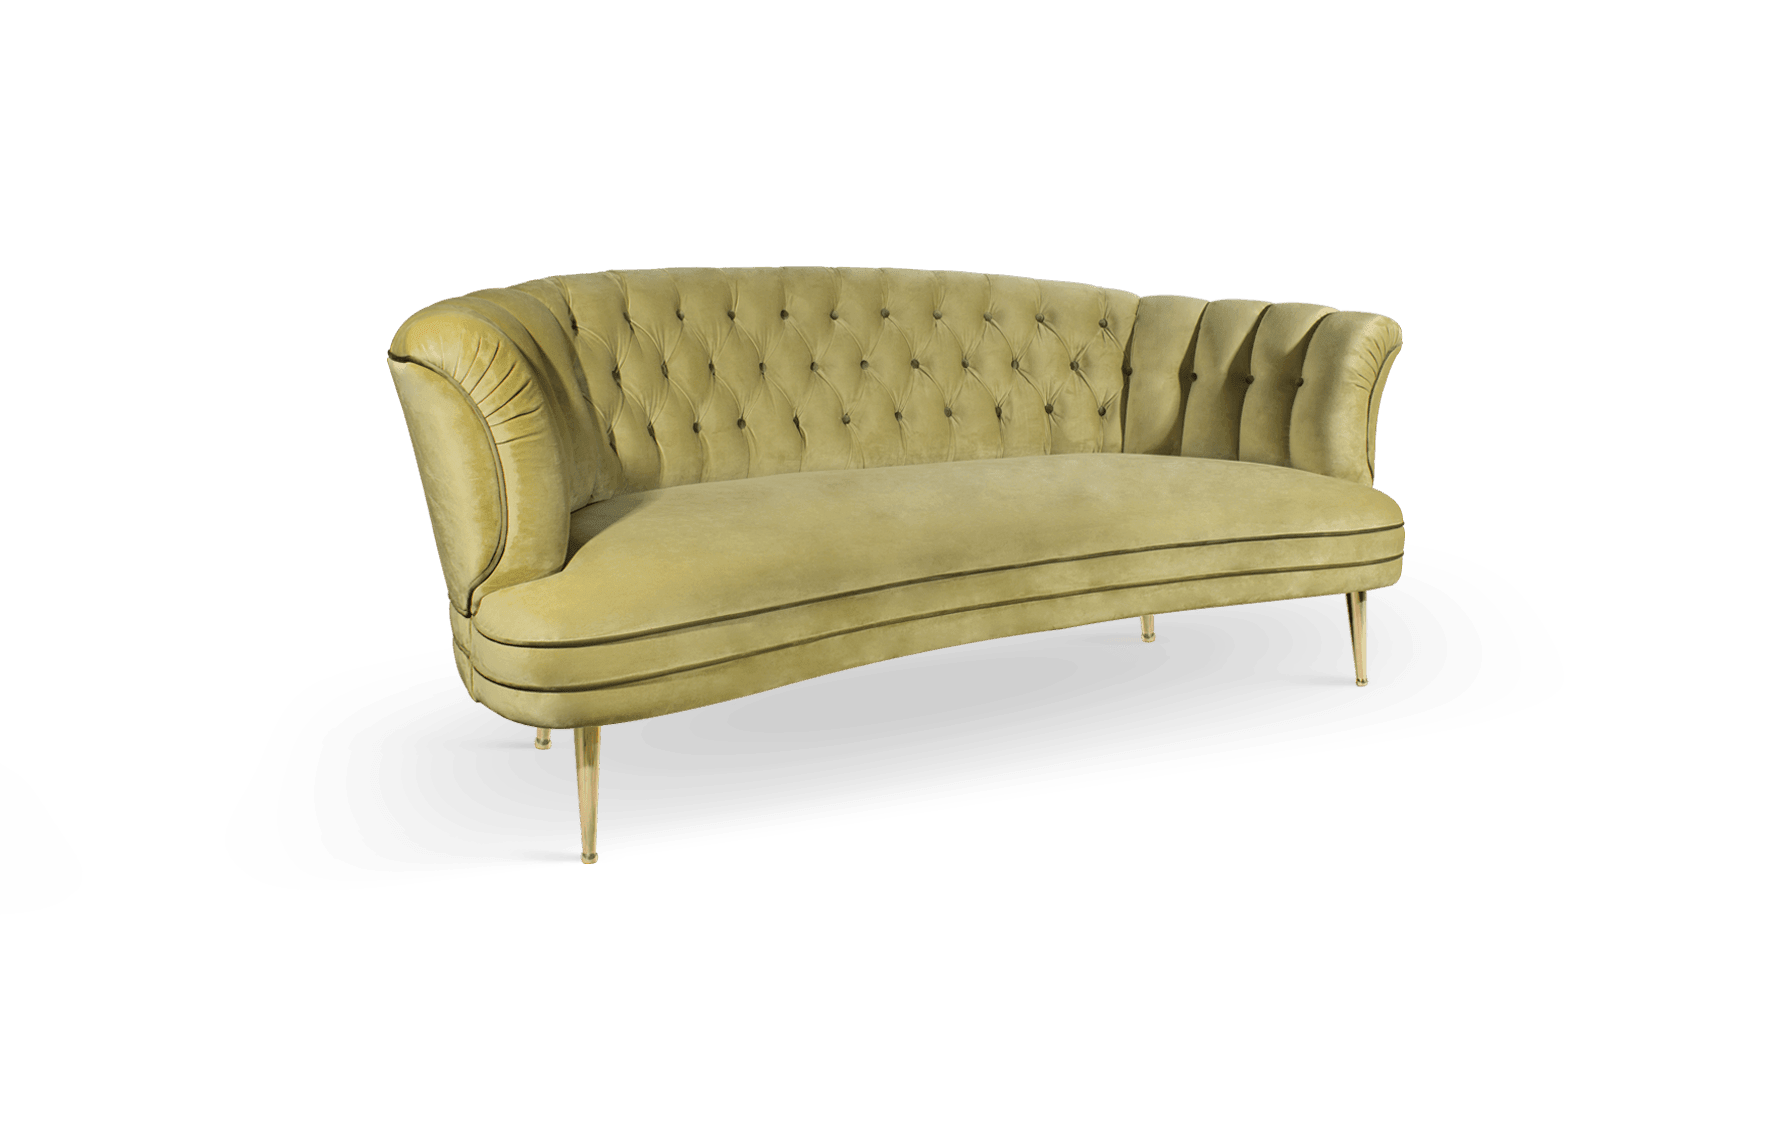 Diana Mid-Century Modern Sofa in mustad yellow cotton velvet